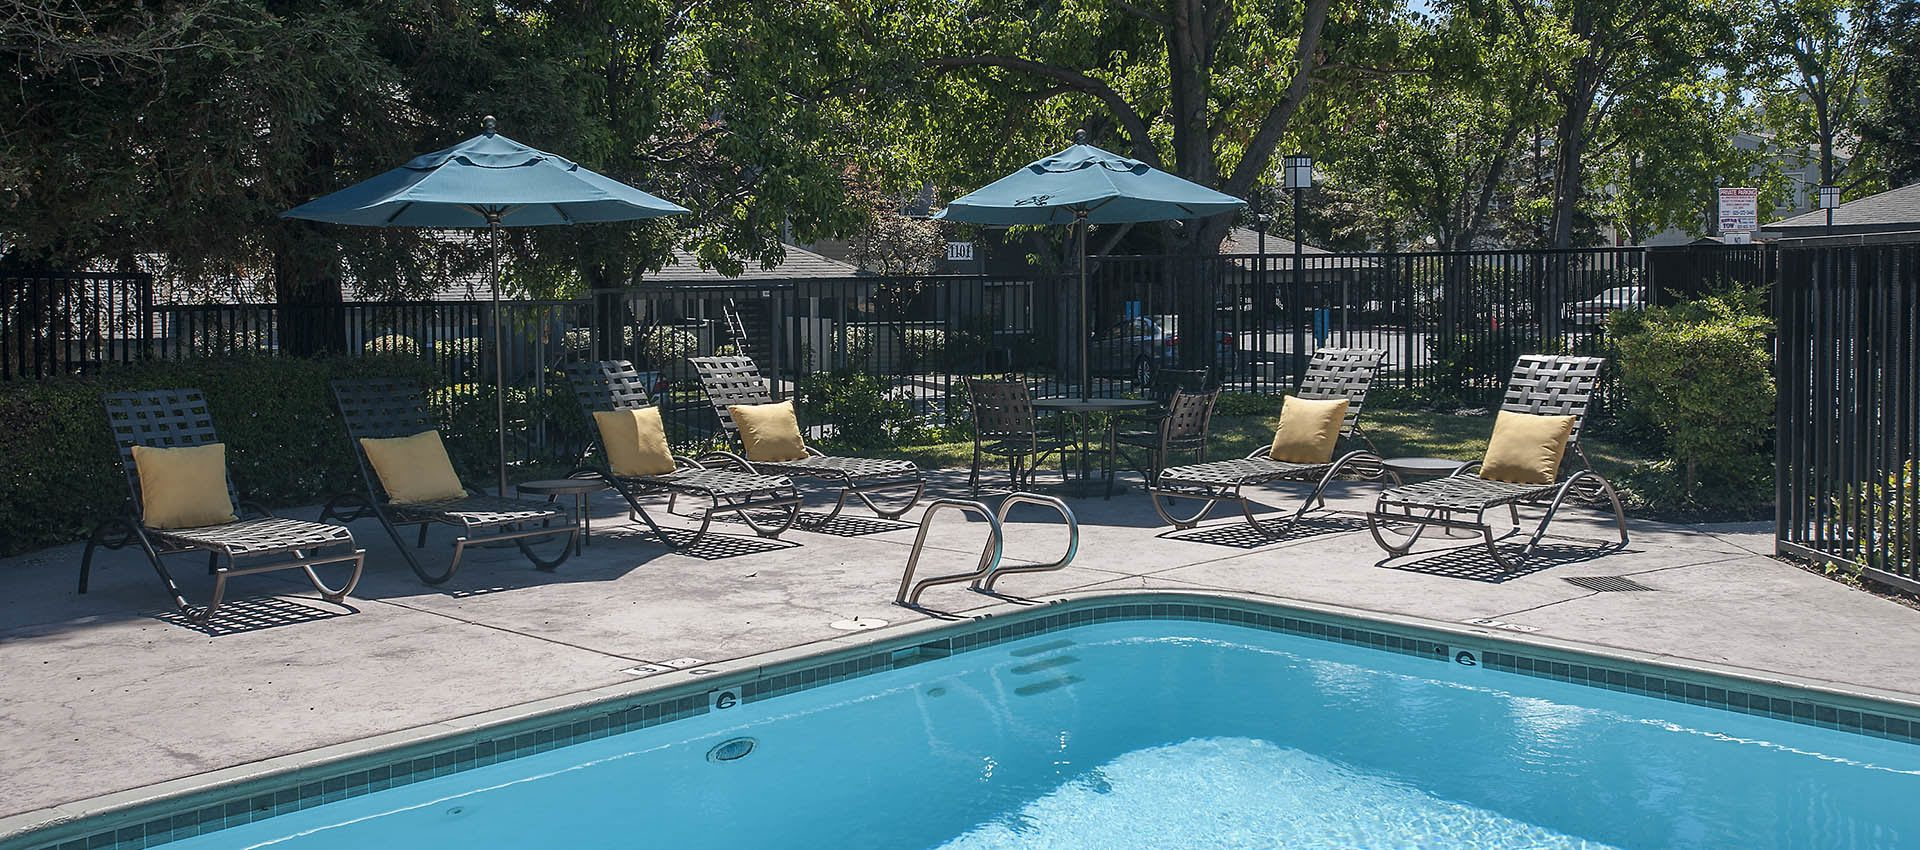 Sun chairs Around Pool at Plum Tree Apartment Homes in Martinez, California